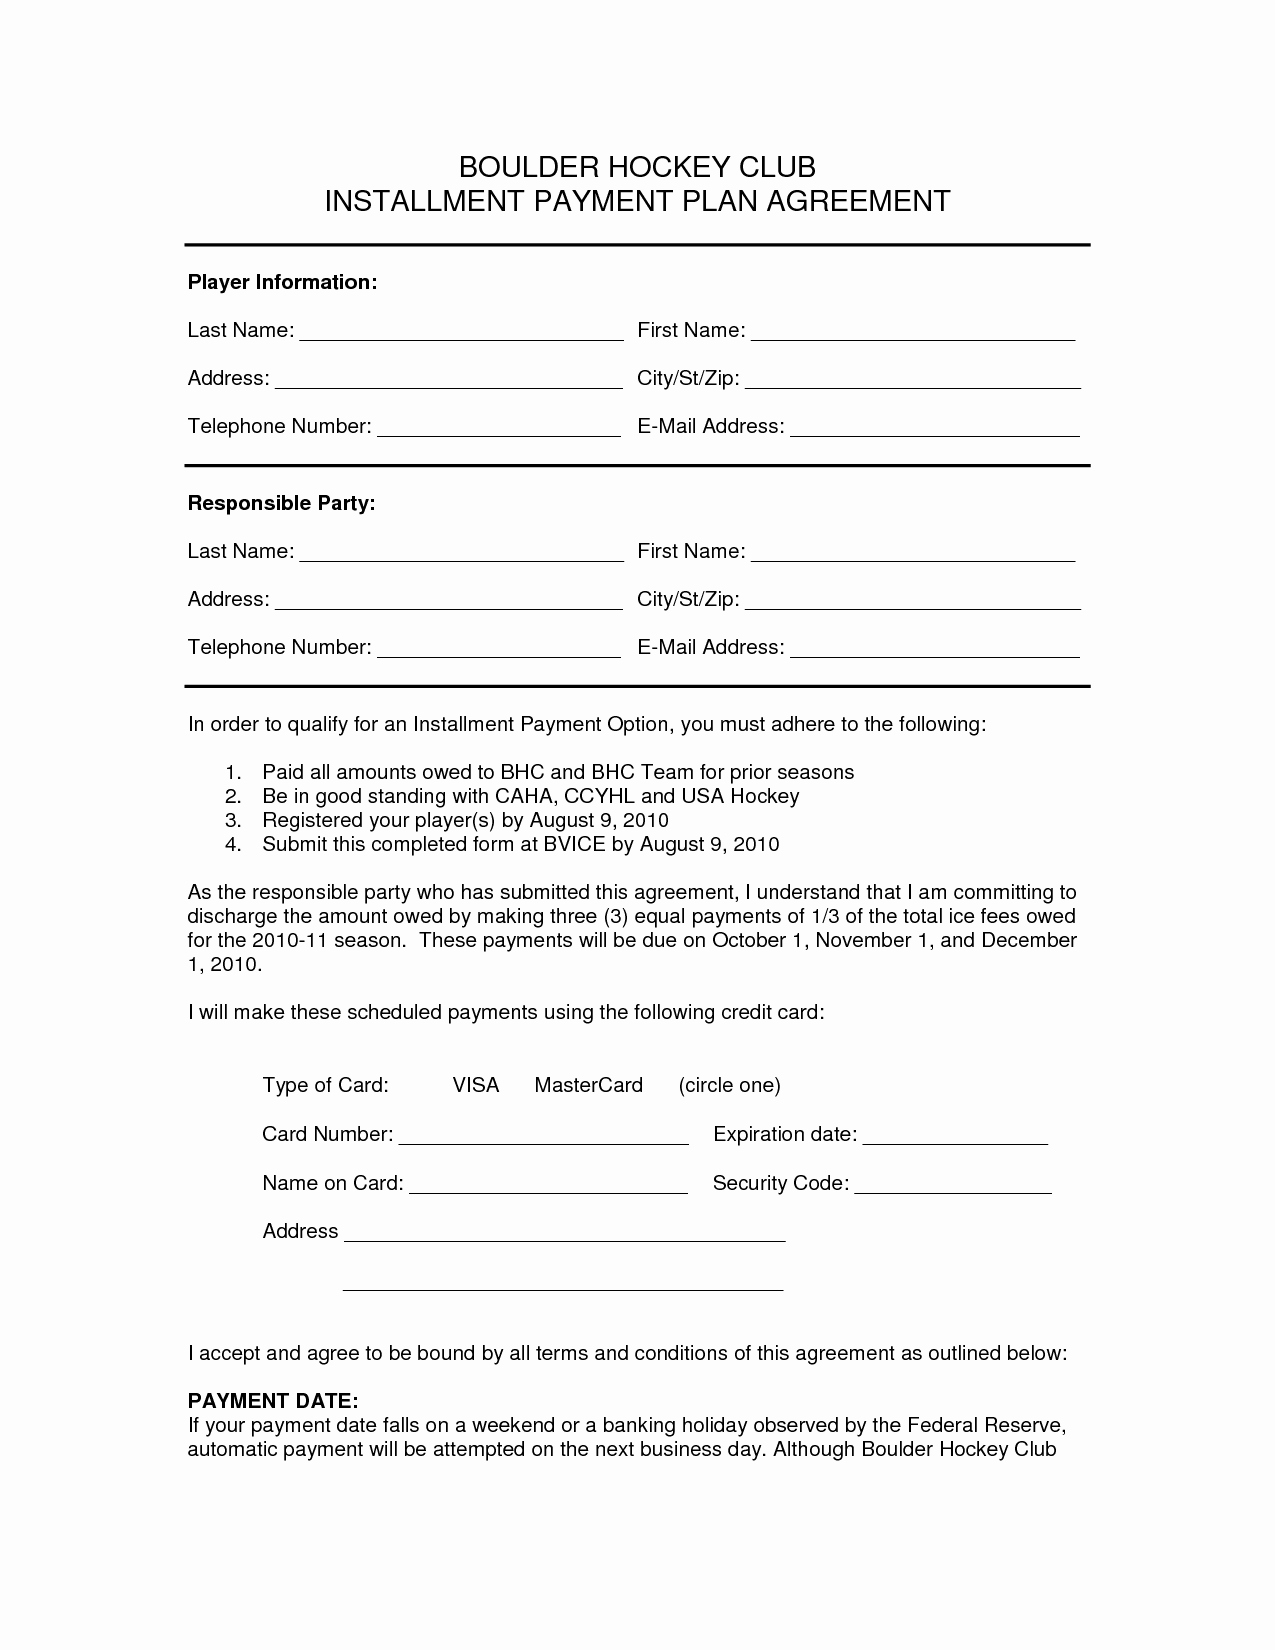 10 Best Of Payment Plan Agreement form Editable